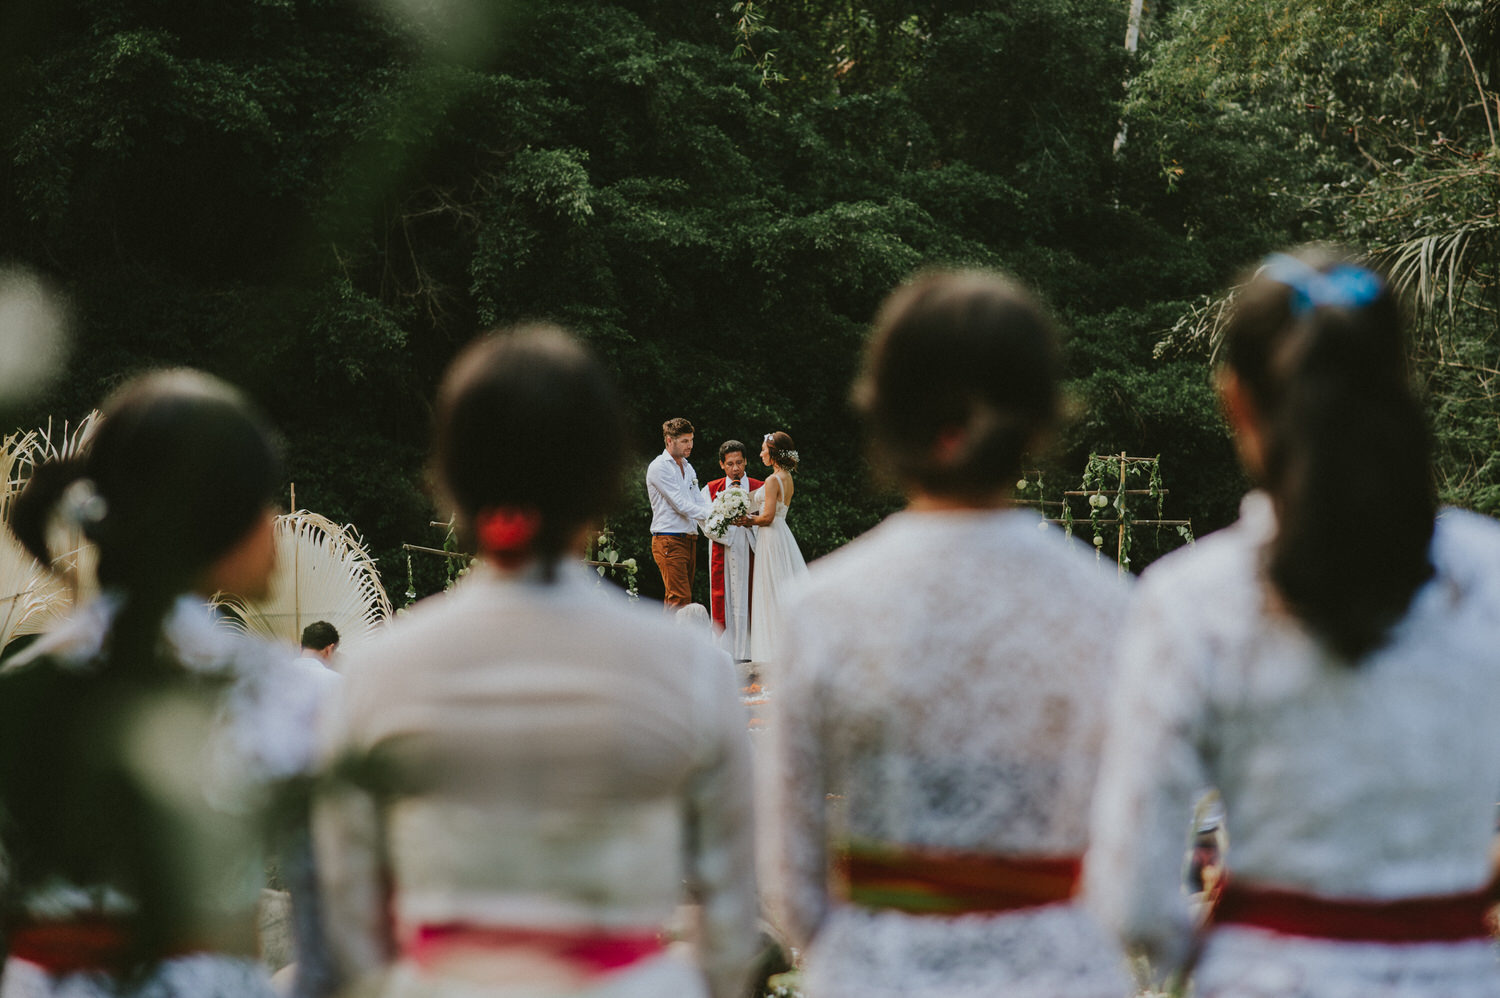 bali-wedding-ubud-wedding-wedding-destination-diktatphotography-kadek-artayasa-elaine-and-glenn-069